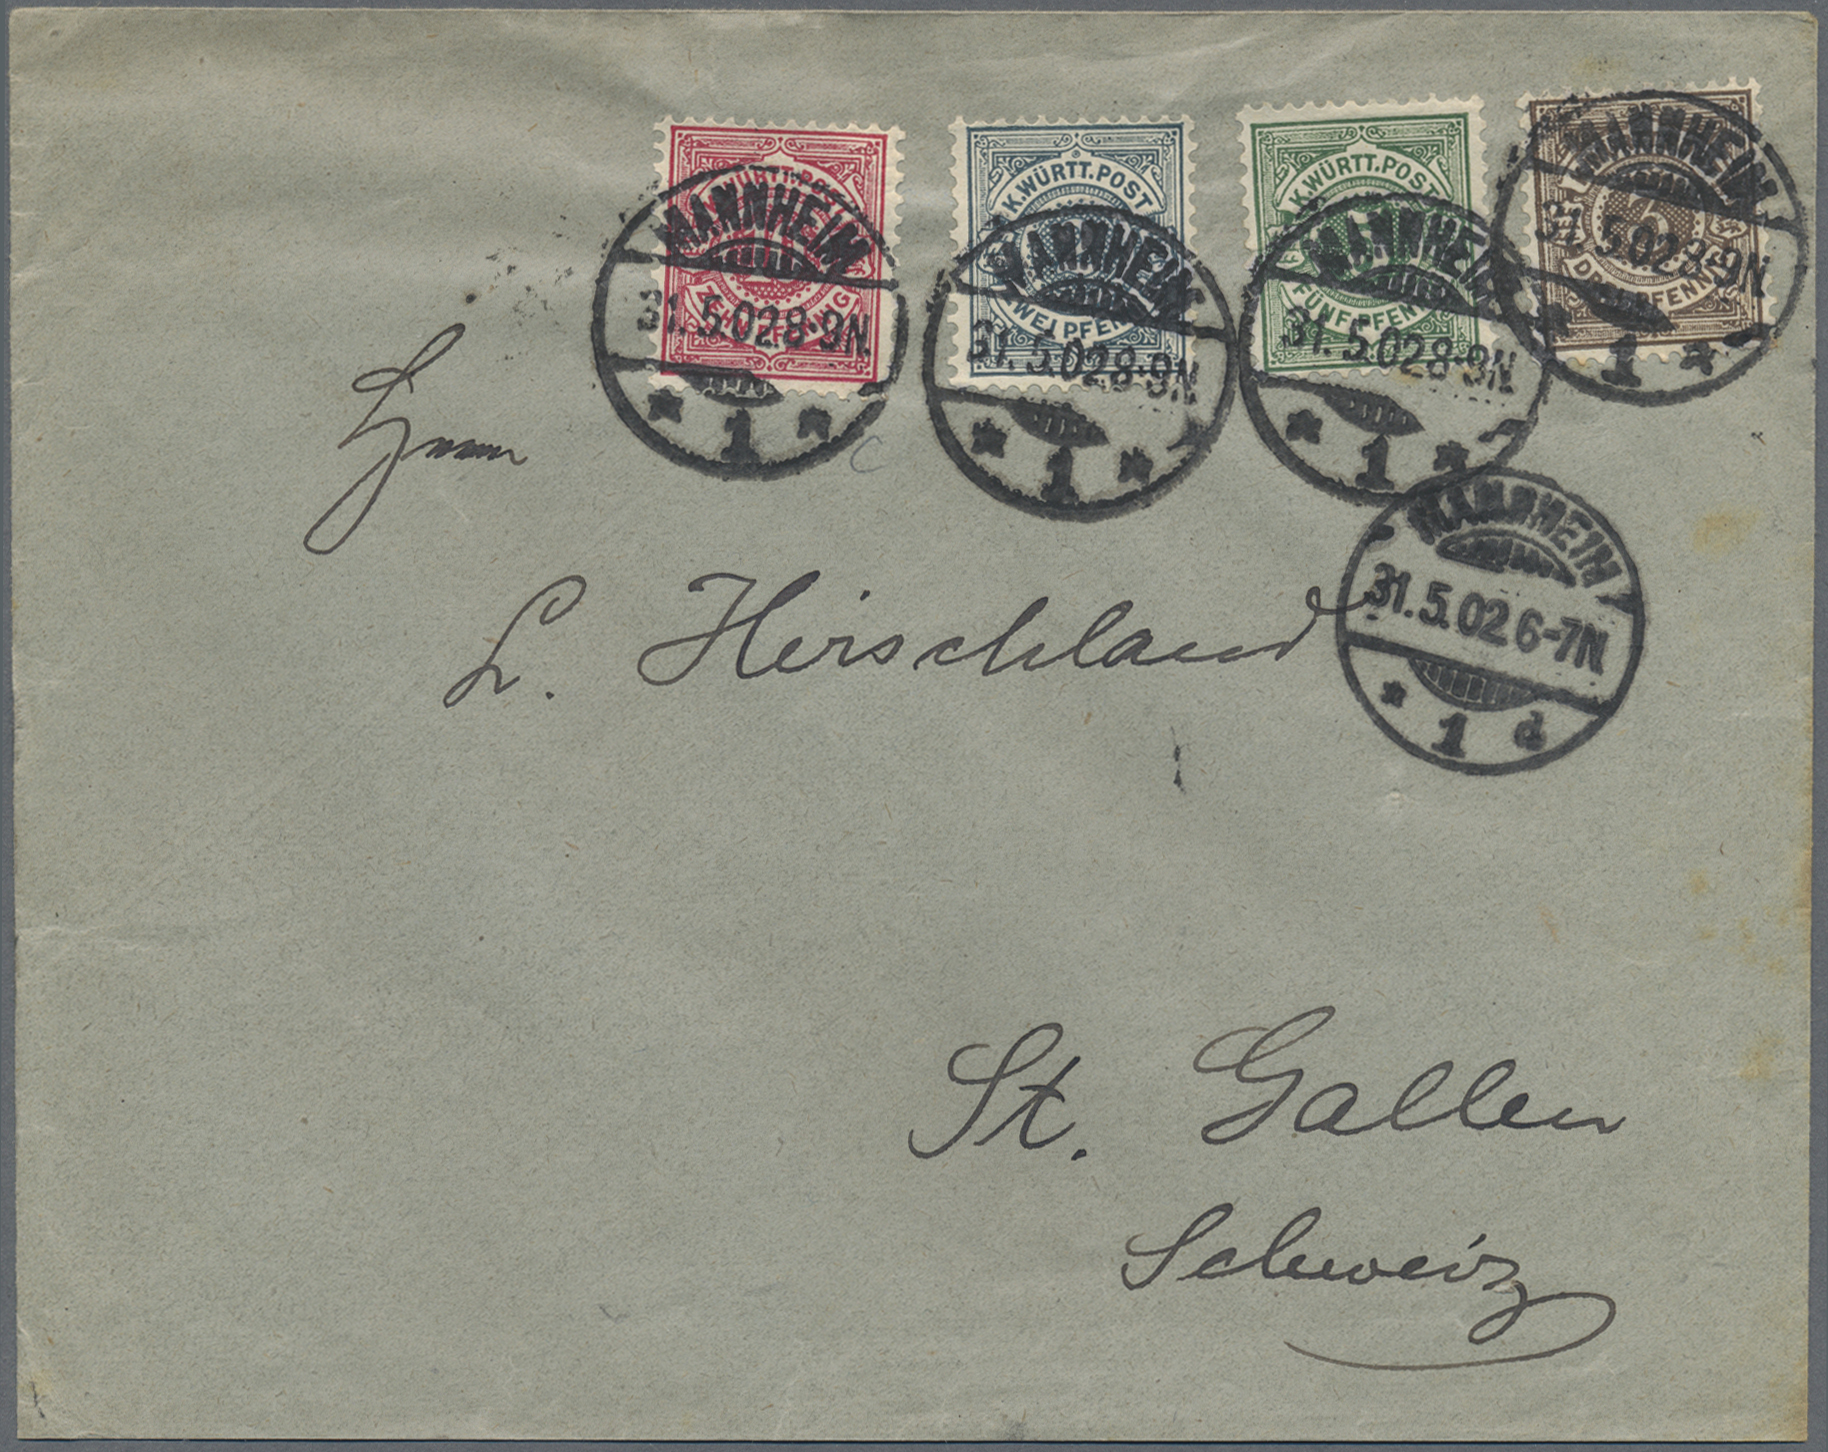 Lot 36341 - Württemberg - Marken und Briefe  -  Auktionshaus Christoph Gärtner GmbH & Co. KG Sale #44 Collections Germany